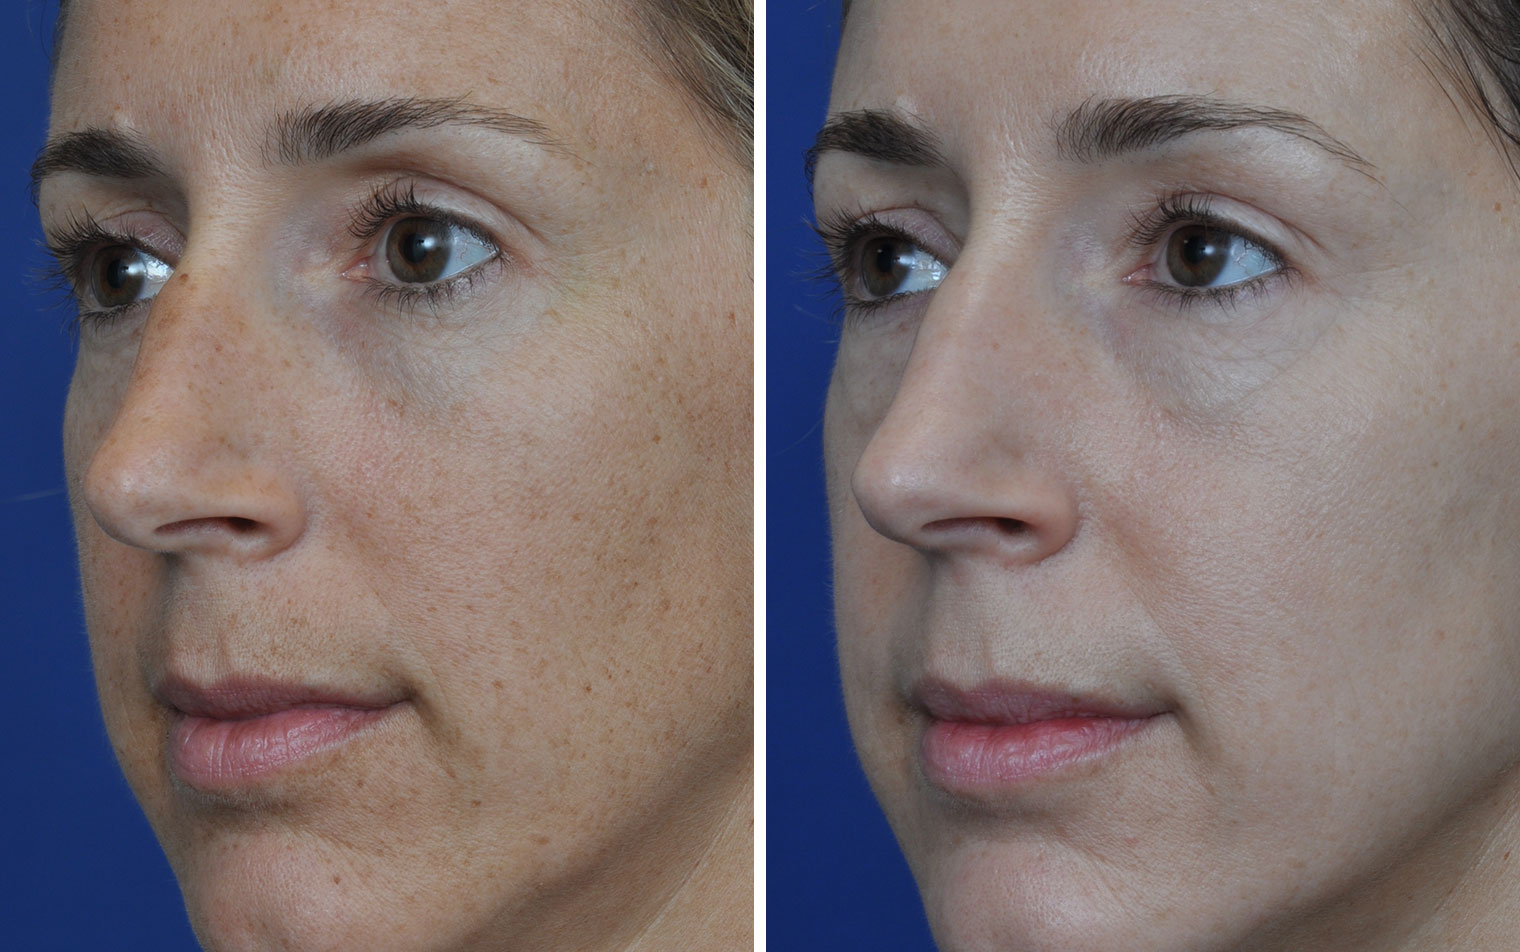 Sorry, that Facial resurfacing before and after